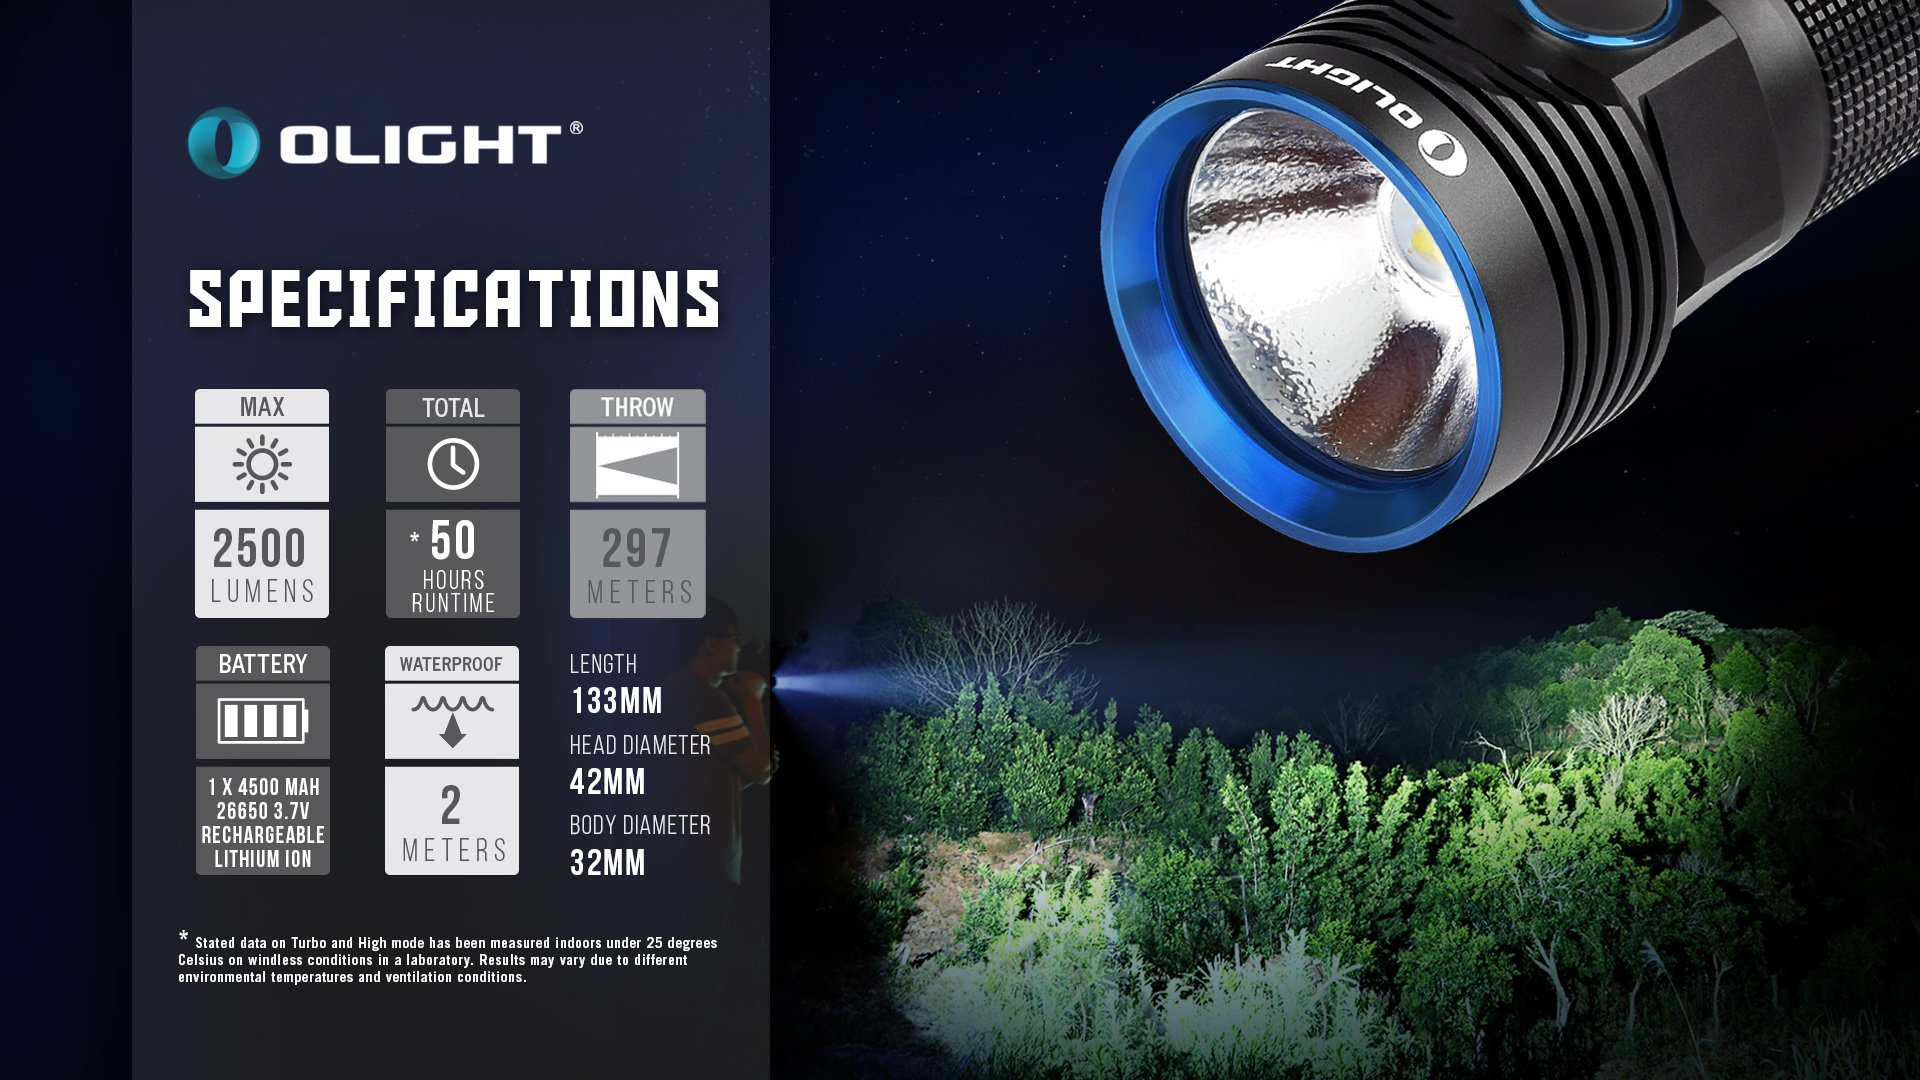 Bundle: Olight R50 Seeker Cree XLamp XHP50 LED 2500 Lumens Rechargeable Flashlight With Rechargeable 26650 4500mAh Battery+Skyben Holster and USB Light by Olight (Image #8)